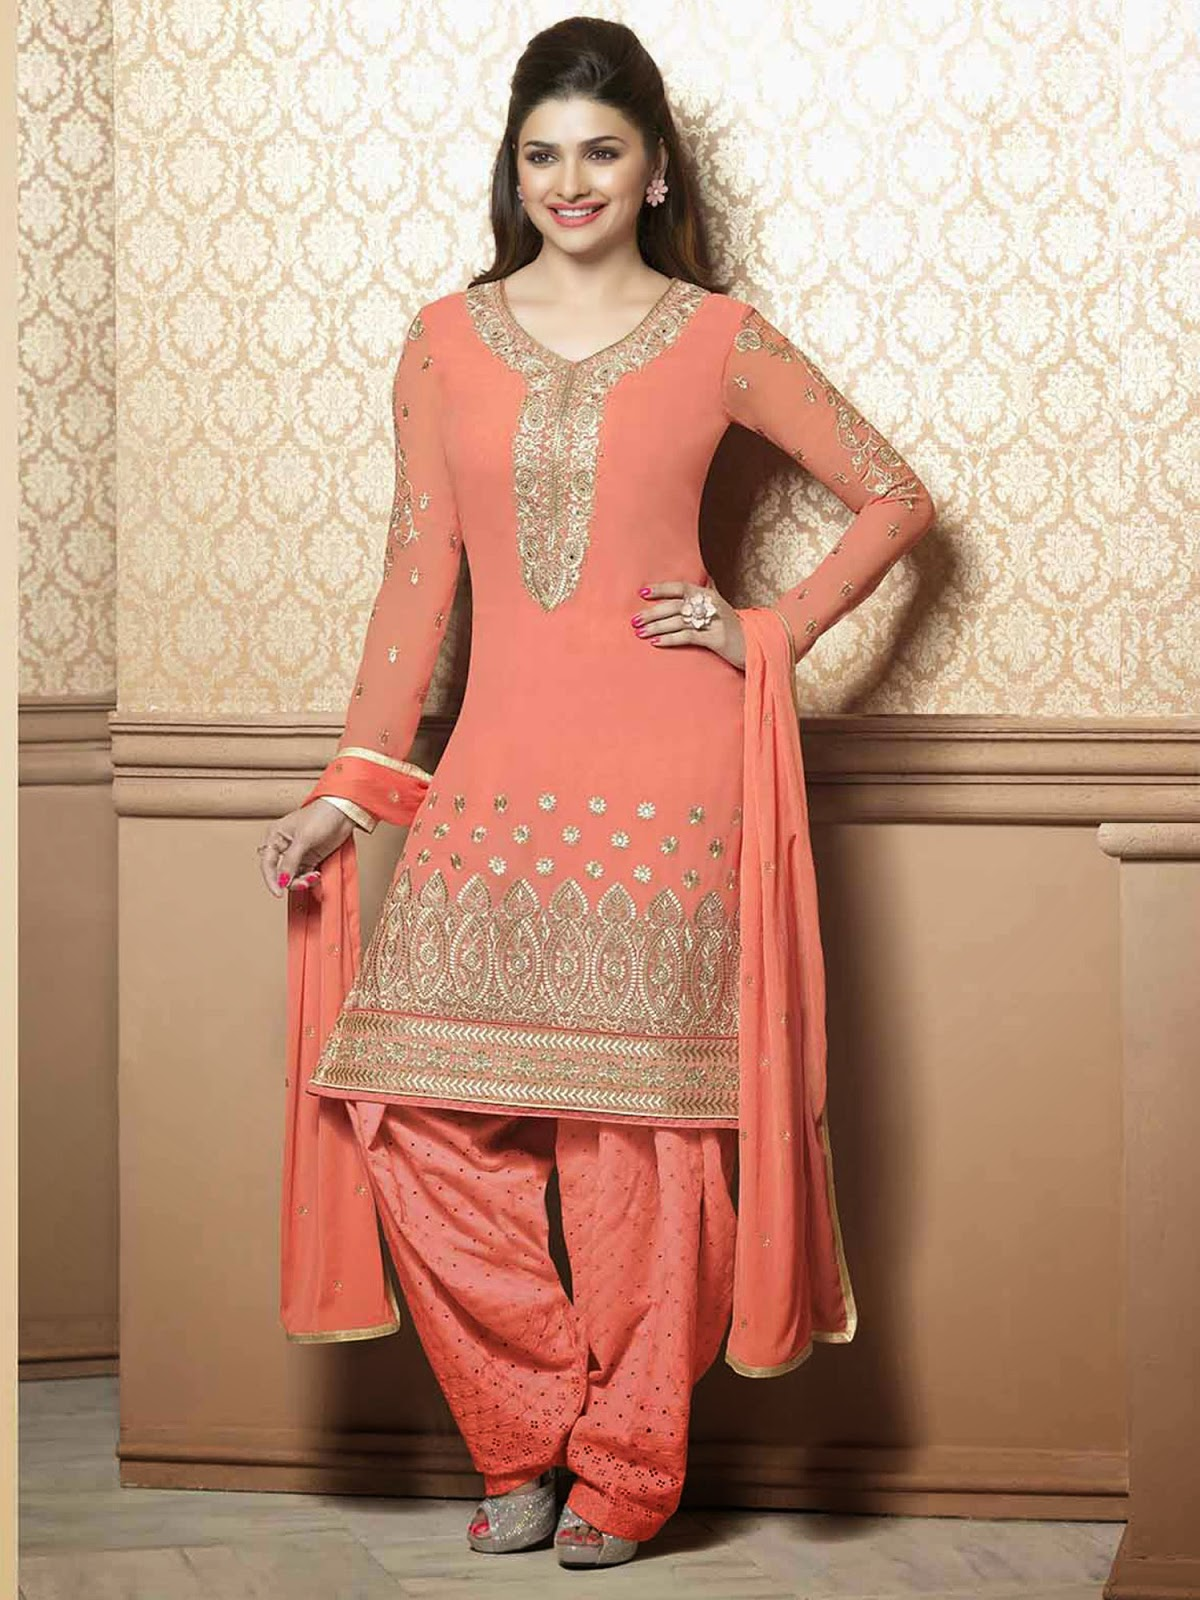 Browse ladies suit salwar of latest design from your favourite online shopping store - Tata CLiQ. Shop salwar suit onine at best price in India. Browse ladies suit salwar of latest design from your favourite online shopping store - Tata CLiQ. What is all the more exciting about shopping for these women suits online on Tata CLiQ is that you.